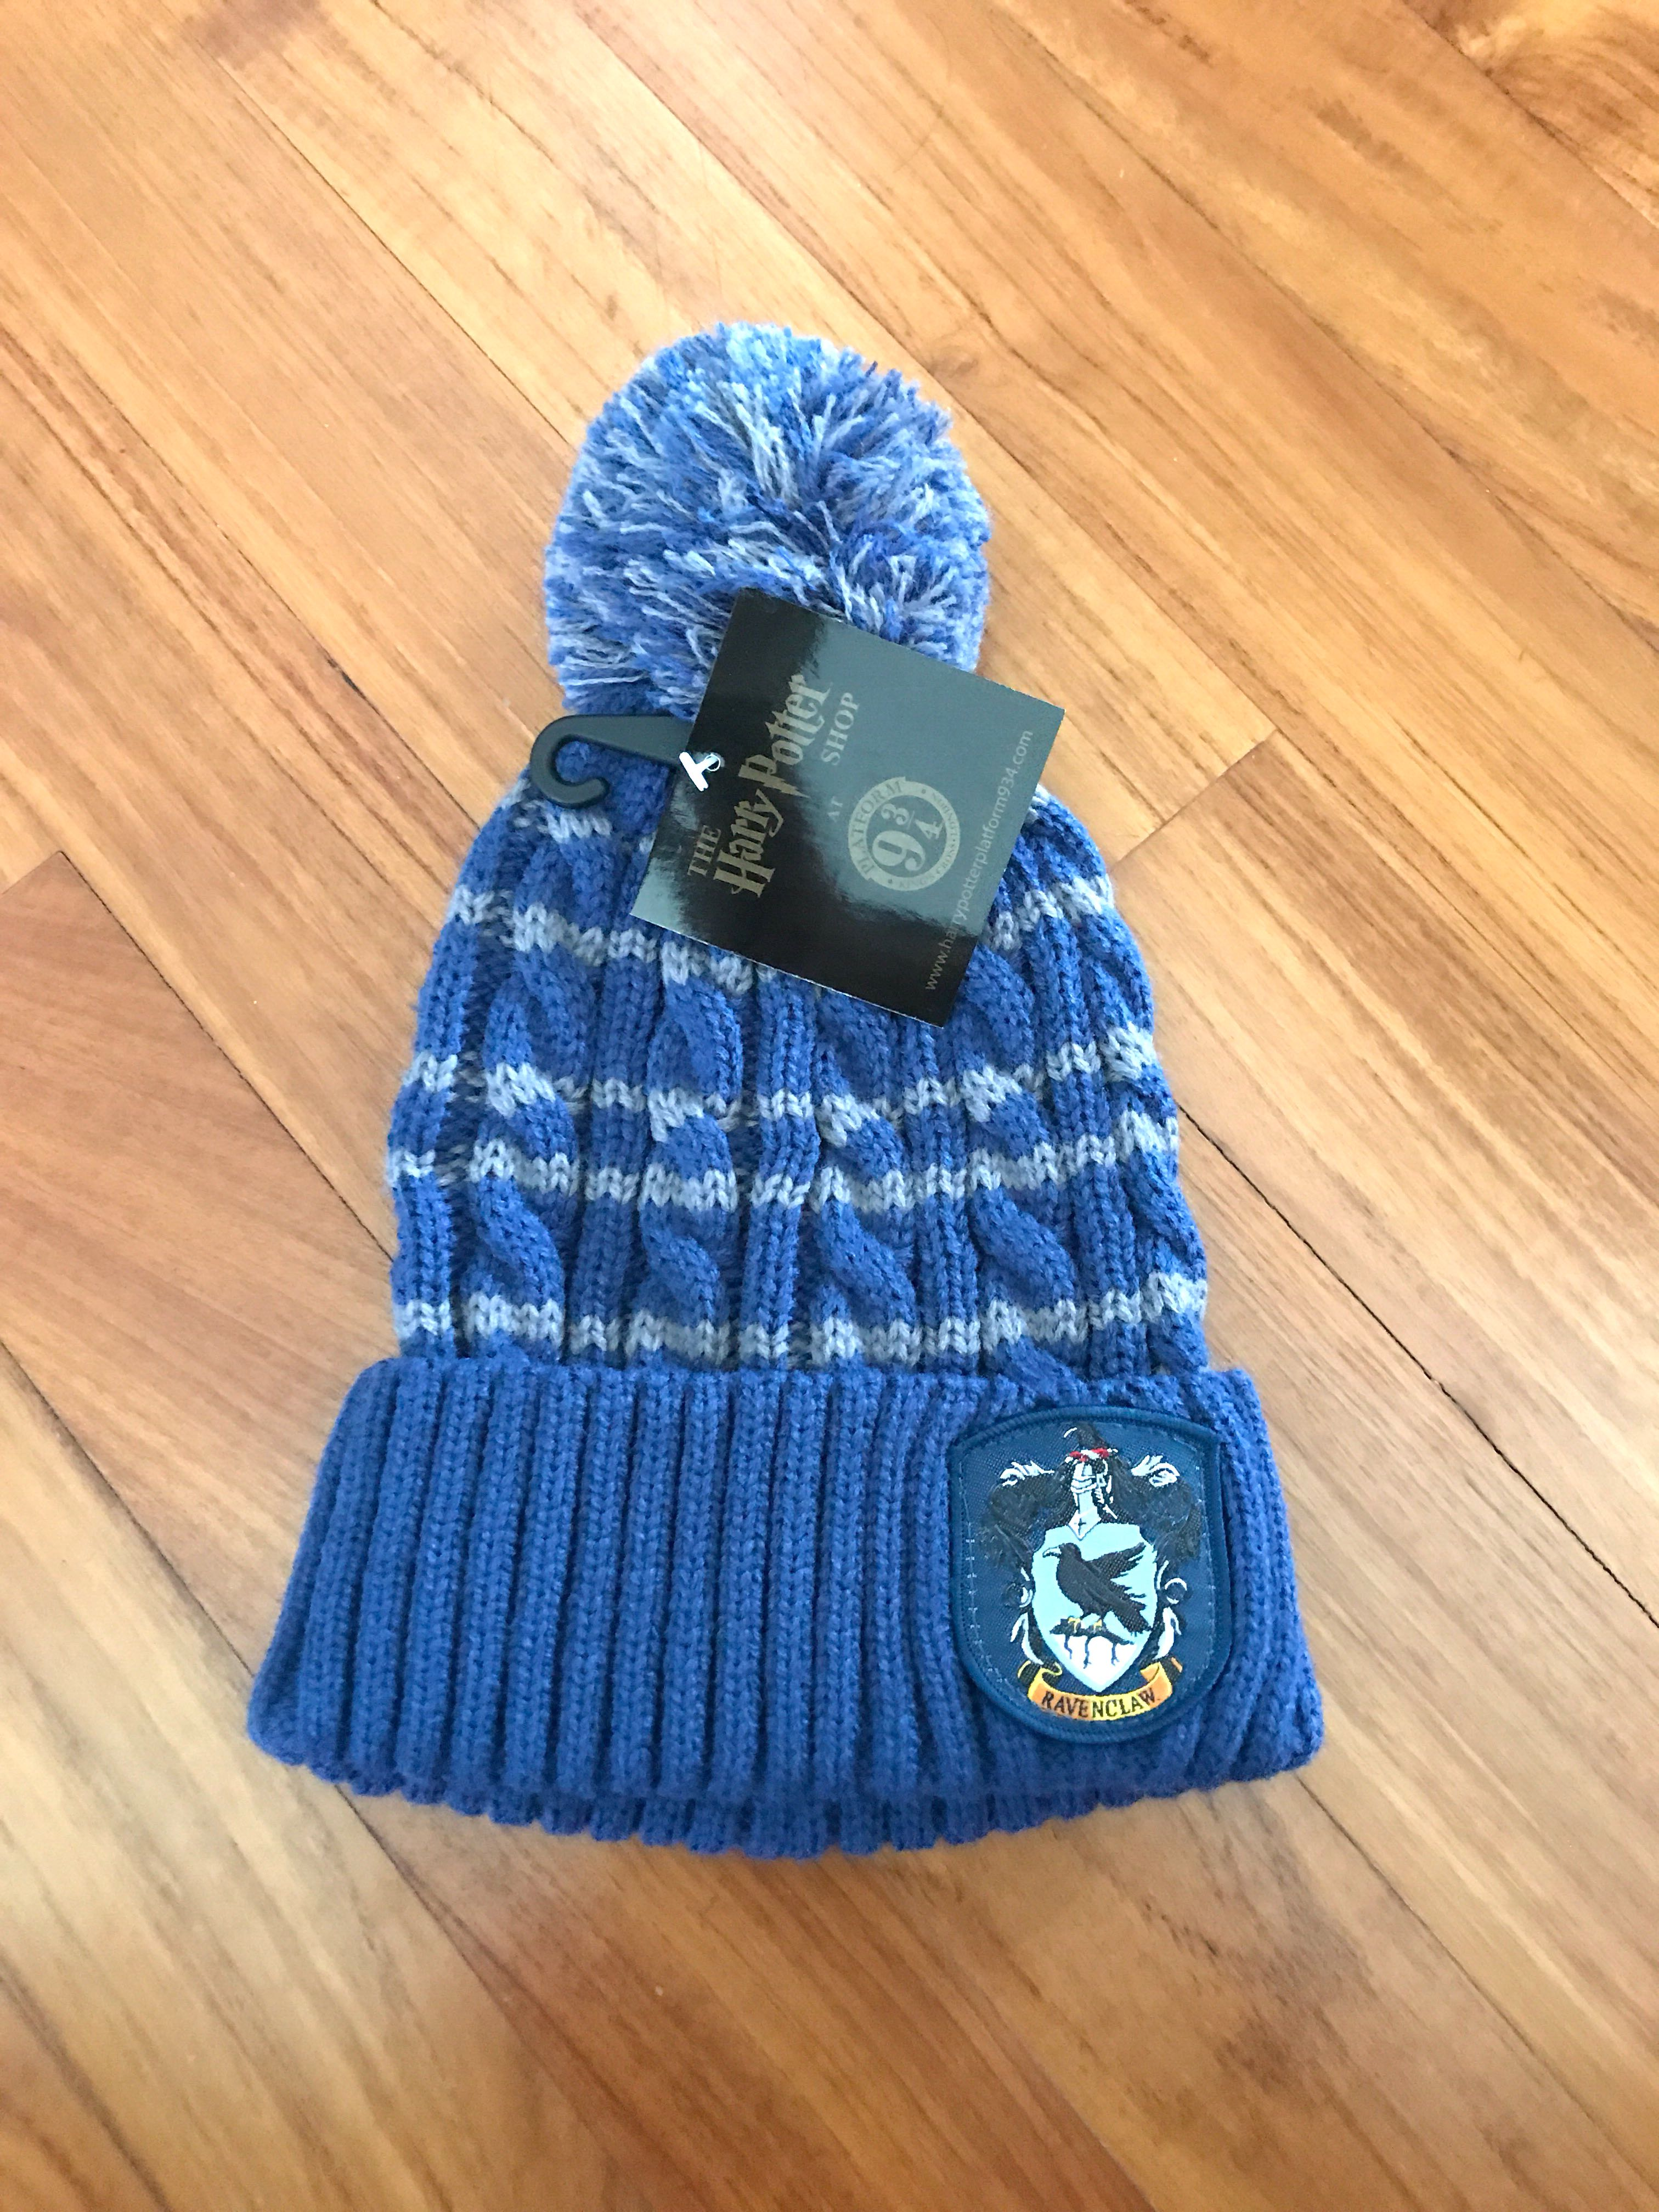 218133f99665c Genuine Harry Potter RavenClaw Hat Beanie from London - Free Size ...